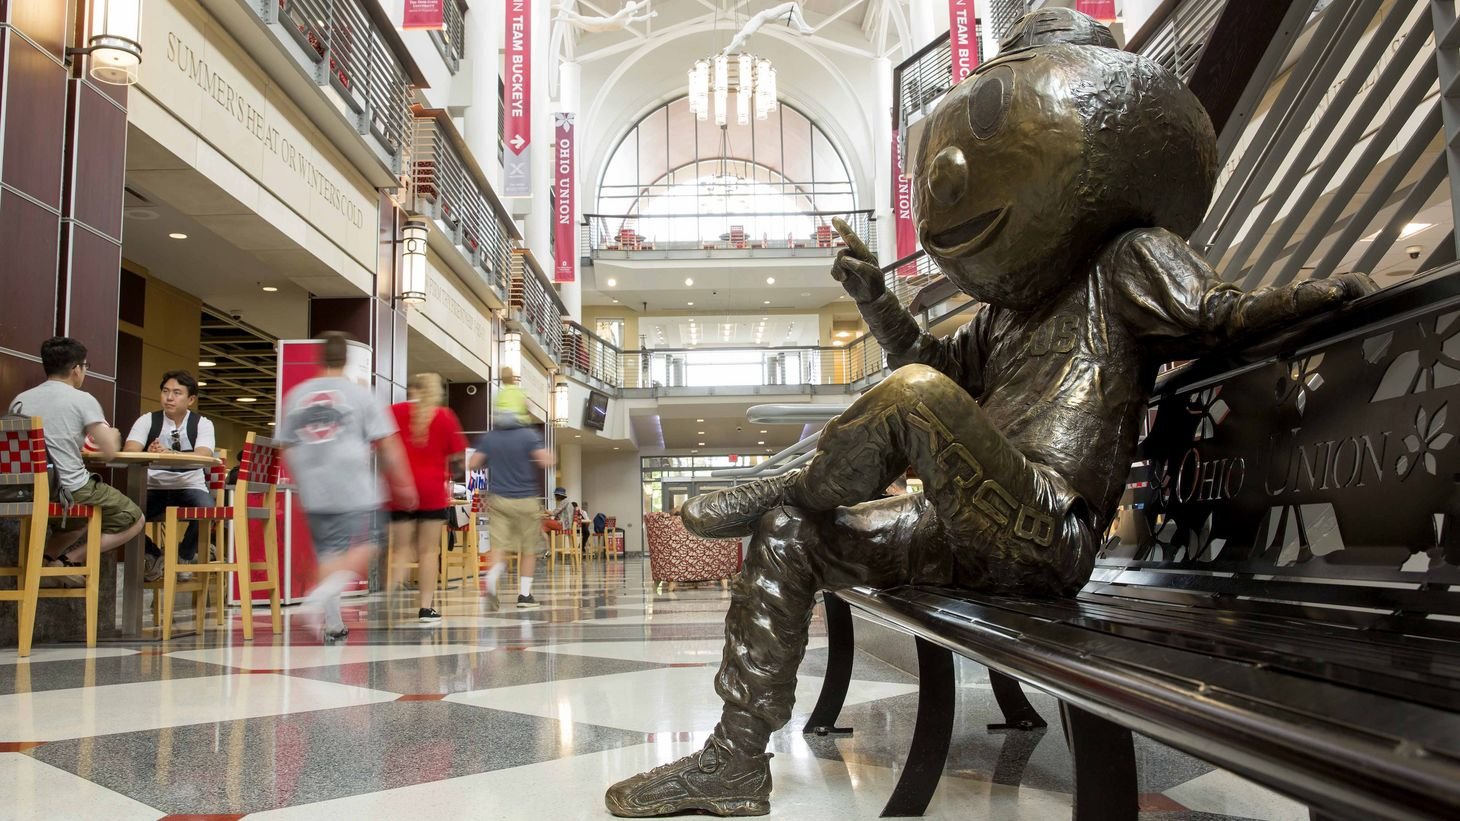 statue of Brutus sitting on a bench in the Ohio Union